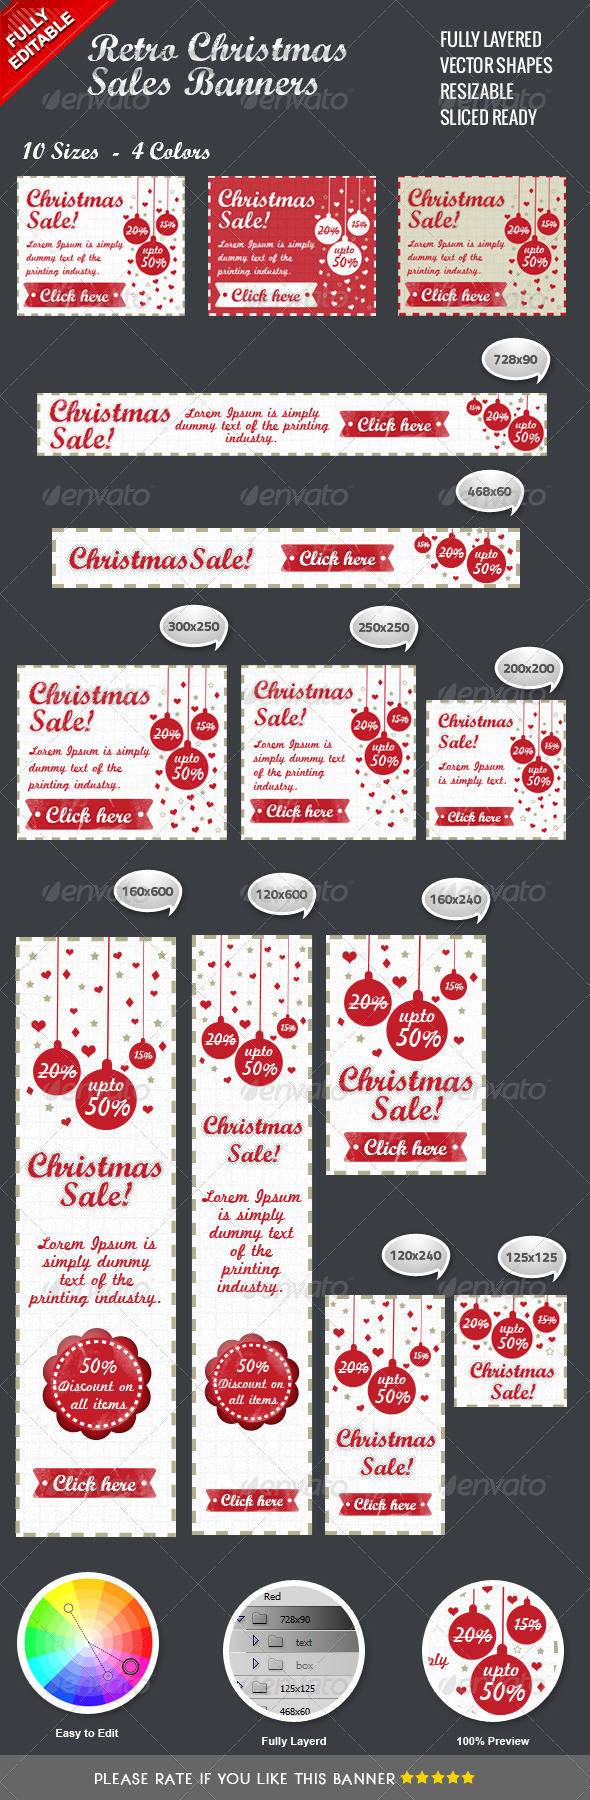 Retro Christmas Sales Banners - Banners & Ads Web Elements